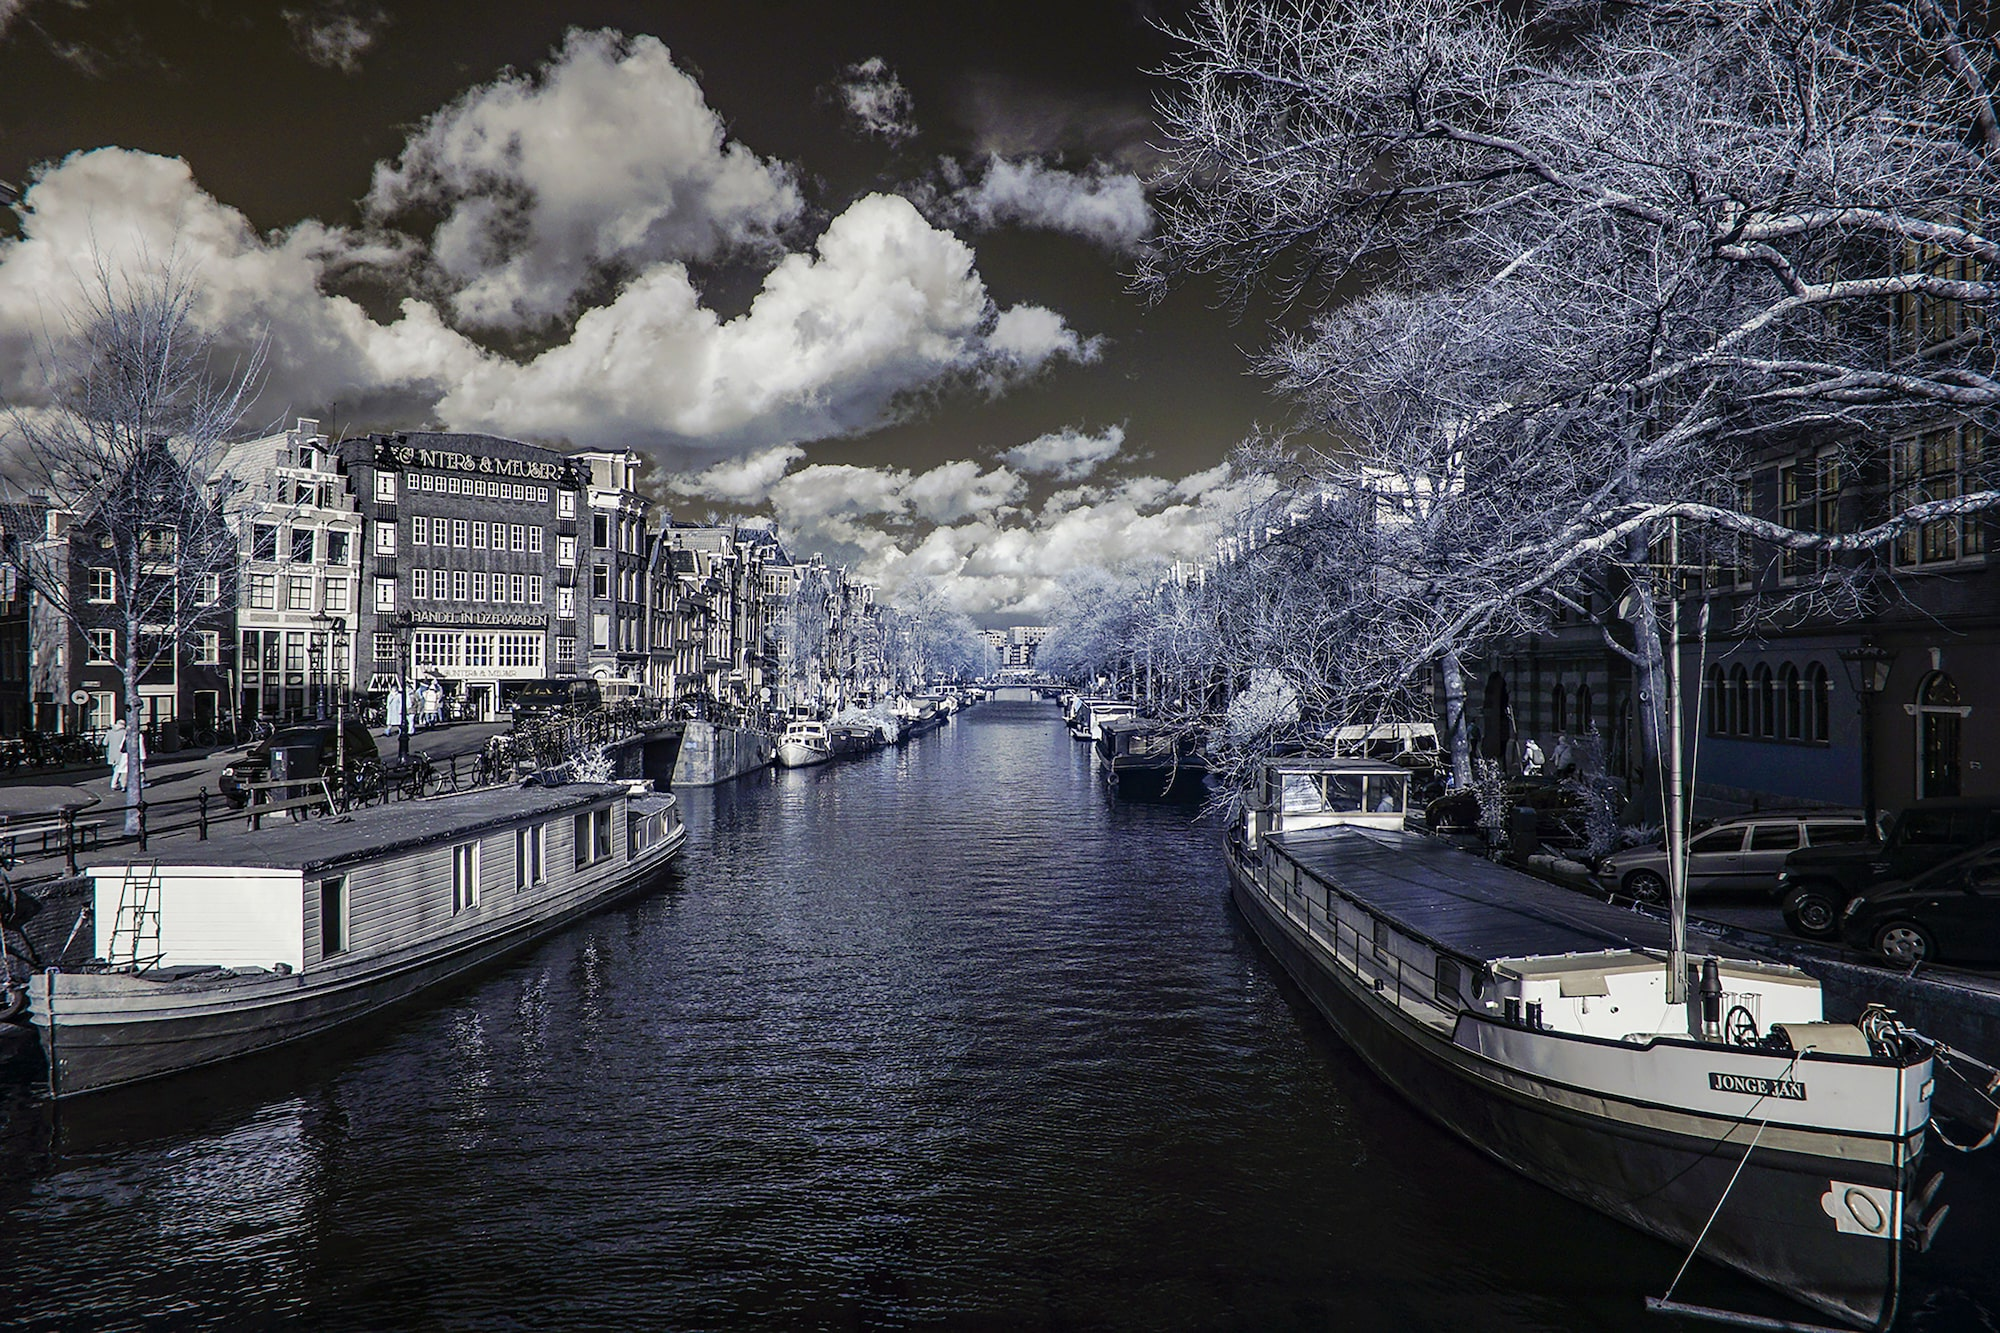 alin popescu sony alpha 600 infrared shot of a canal with a dark sky and fluffy white clouds